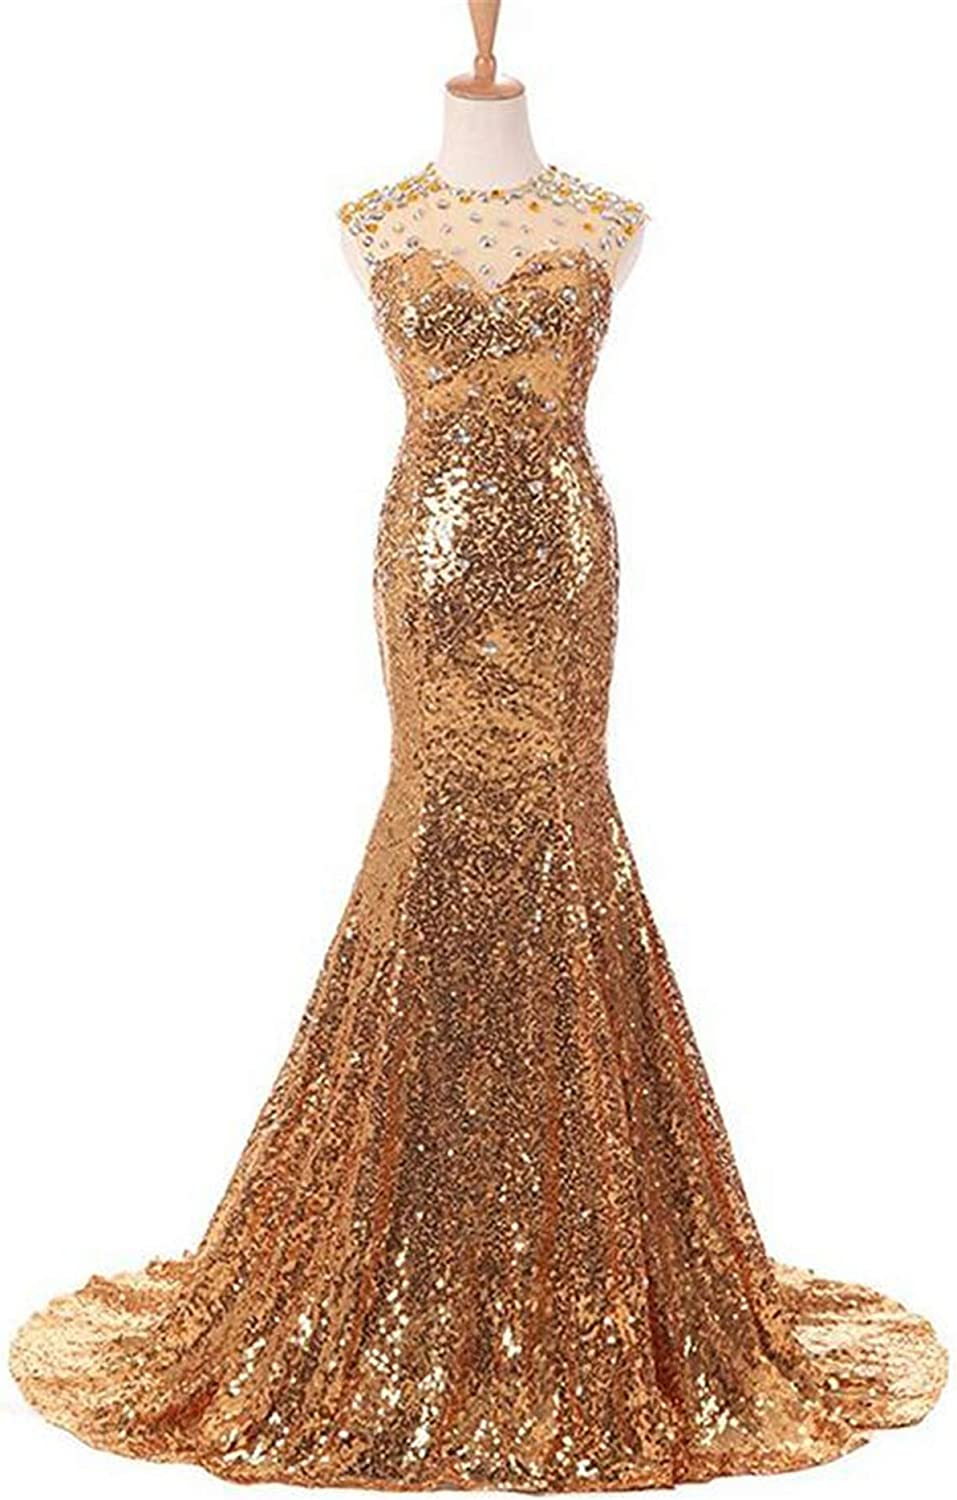 Evening Dresses, for Women Sequin V Neck Elegant Floor Length Sleeveless Sequin Long Formal Prom Party US22